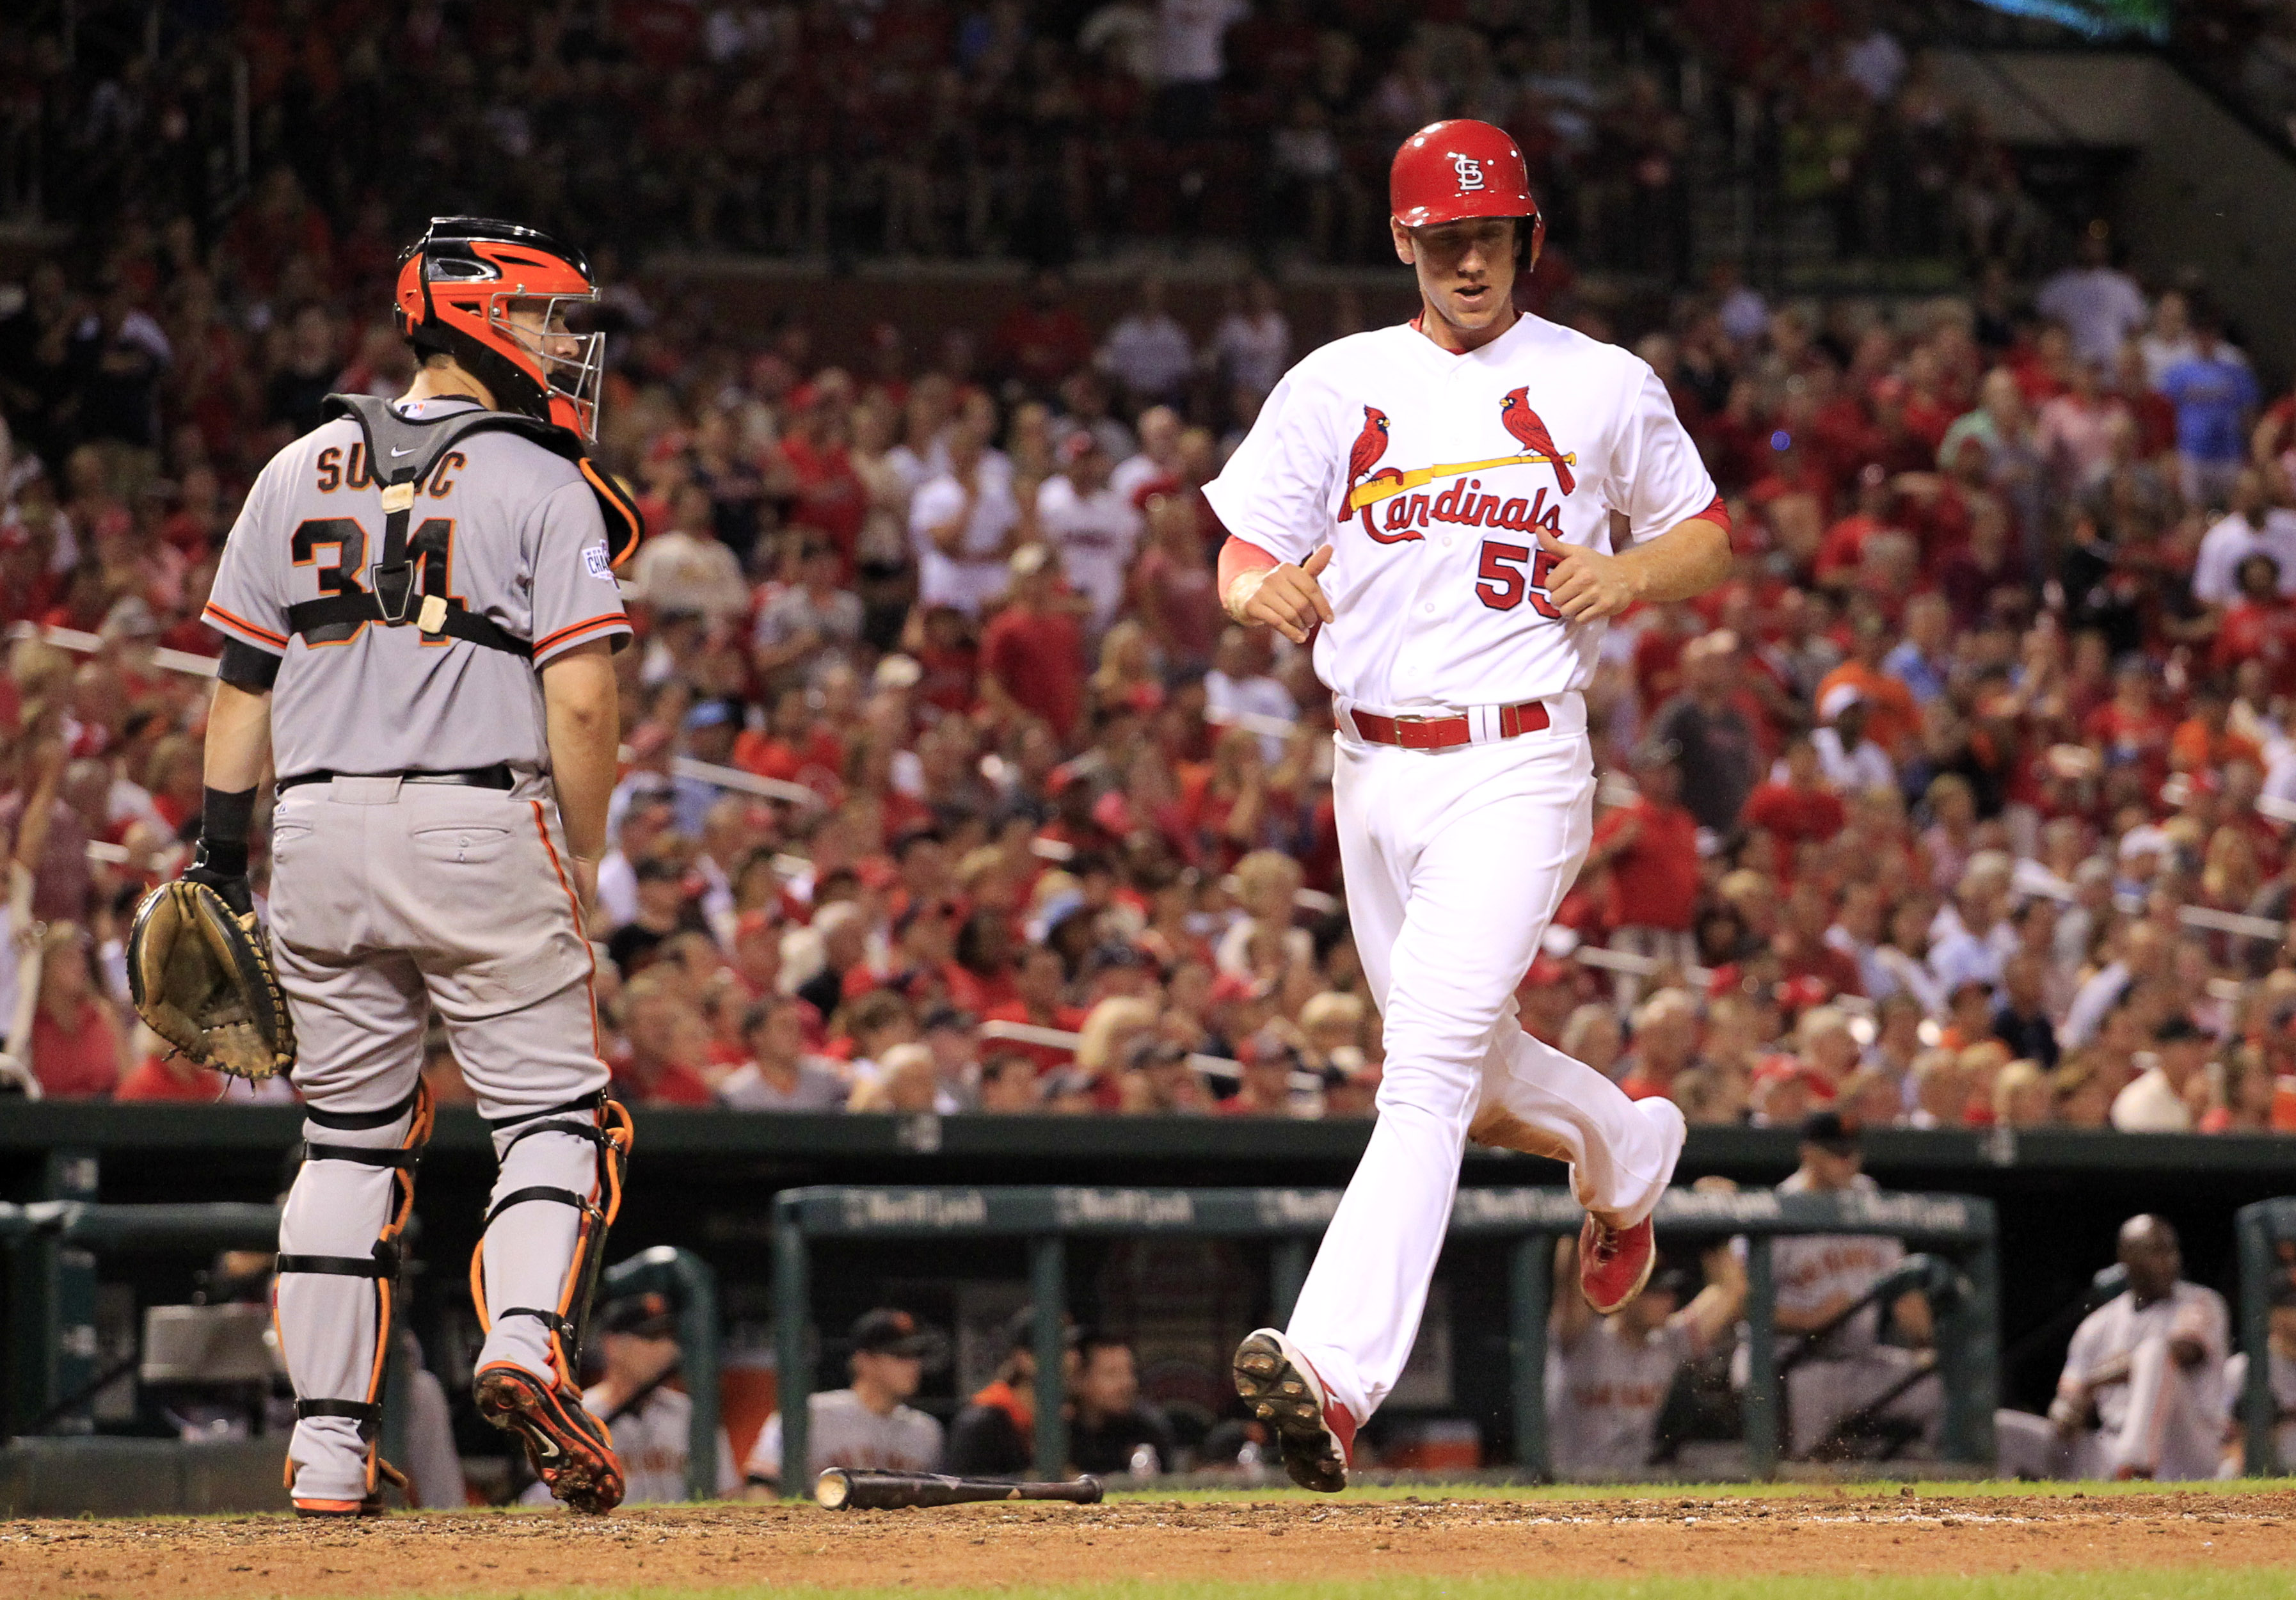 St. Louis Cardinals' Stephen Piscotty, right, scores past San Francisco Giants catcher Andrew Susac during the eighth inning of a baseball game Monday, Aug. 17, 2015, in St. Louis. (AP Photo/Jeff Roberson)